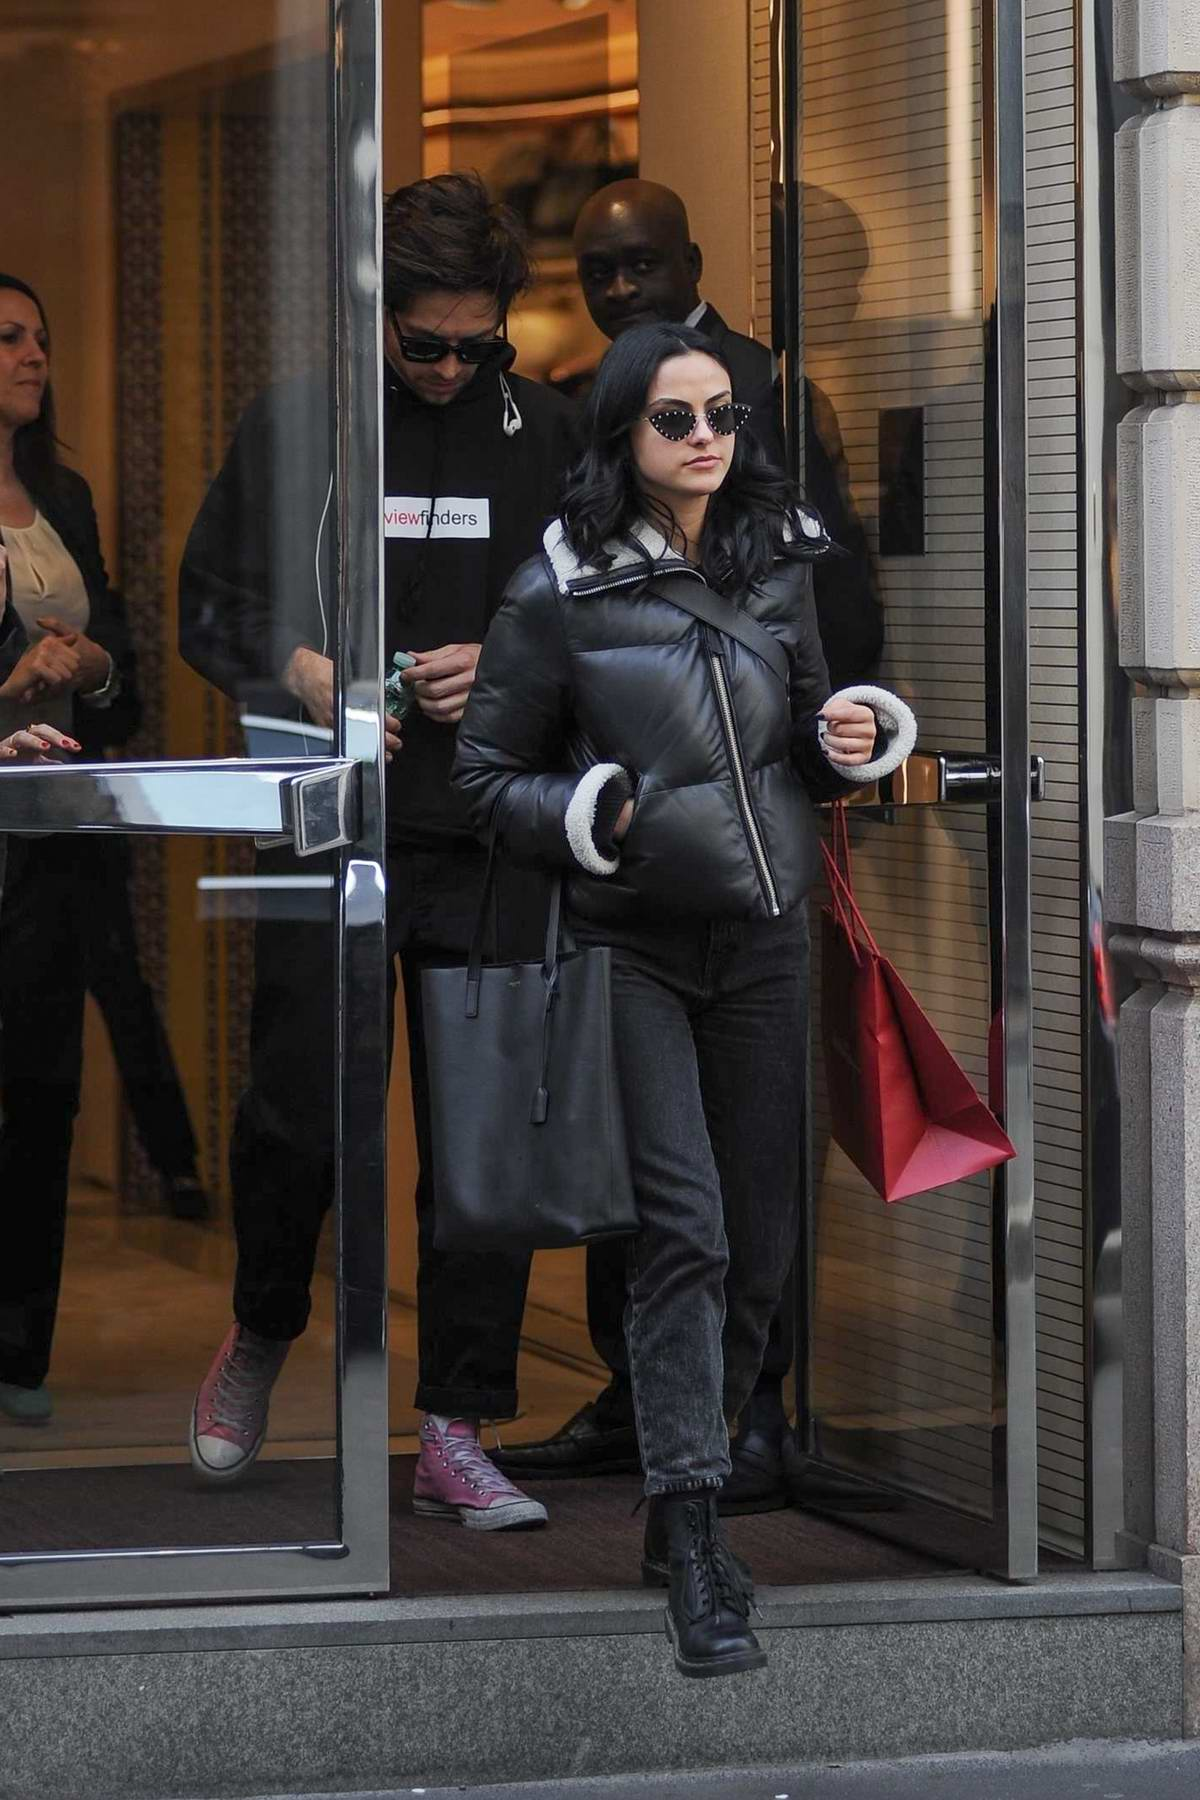 Camila Mendes spotted leaving Salvatore Ferragamo boutique with her new boyfriend in Milan, Italy